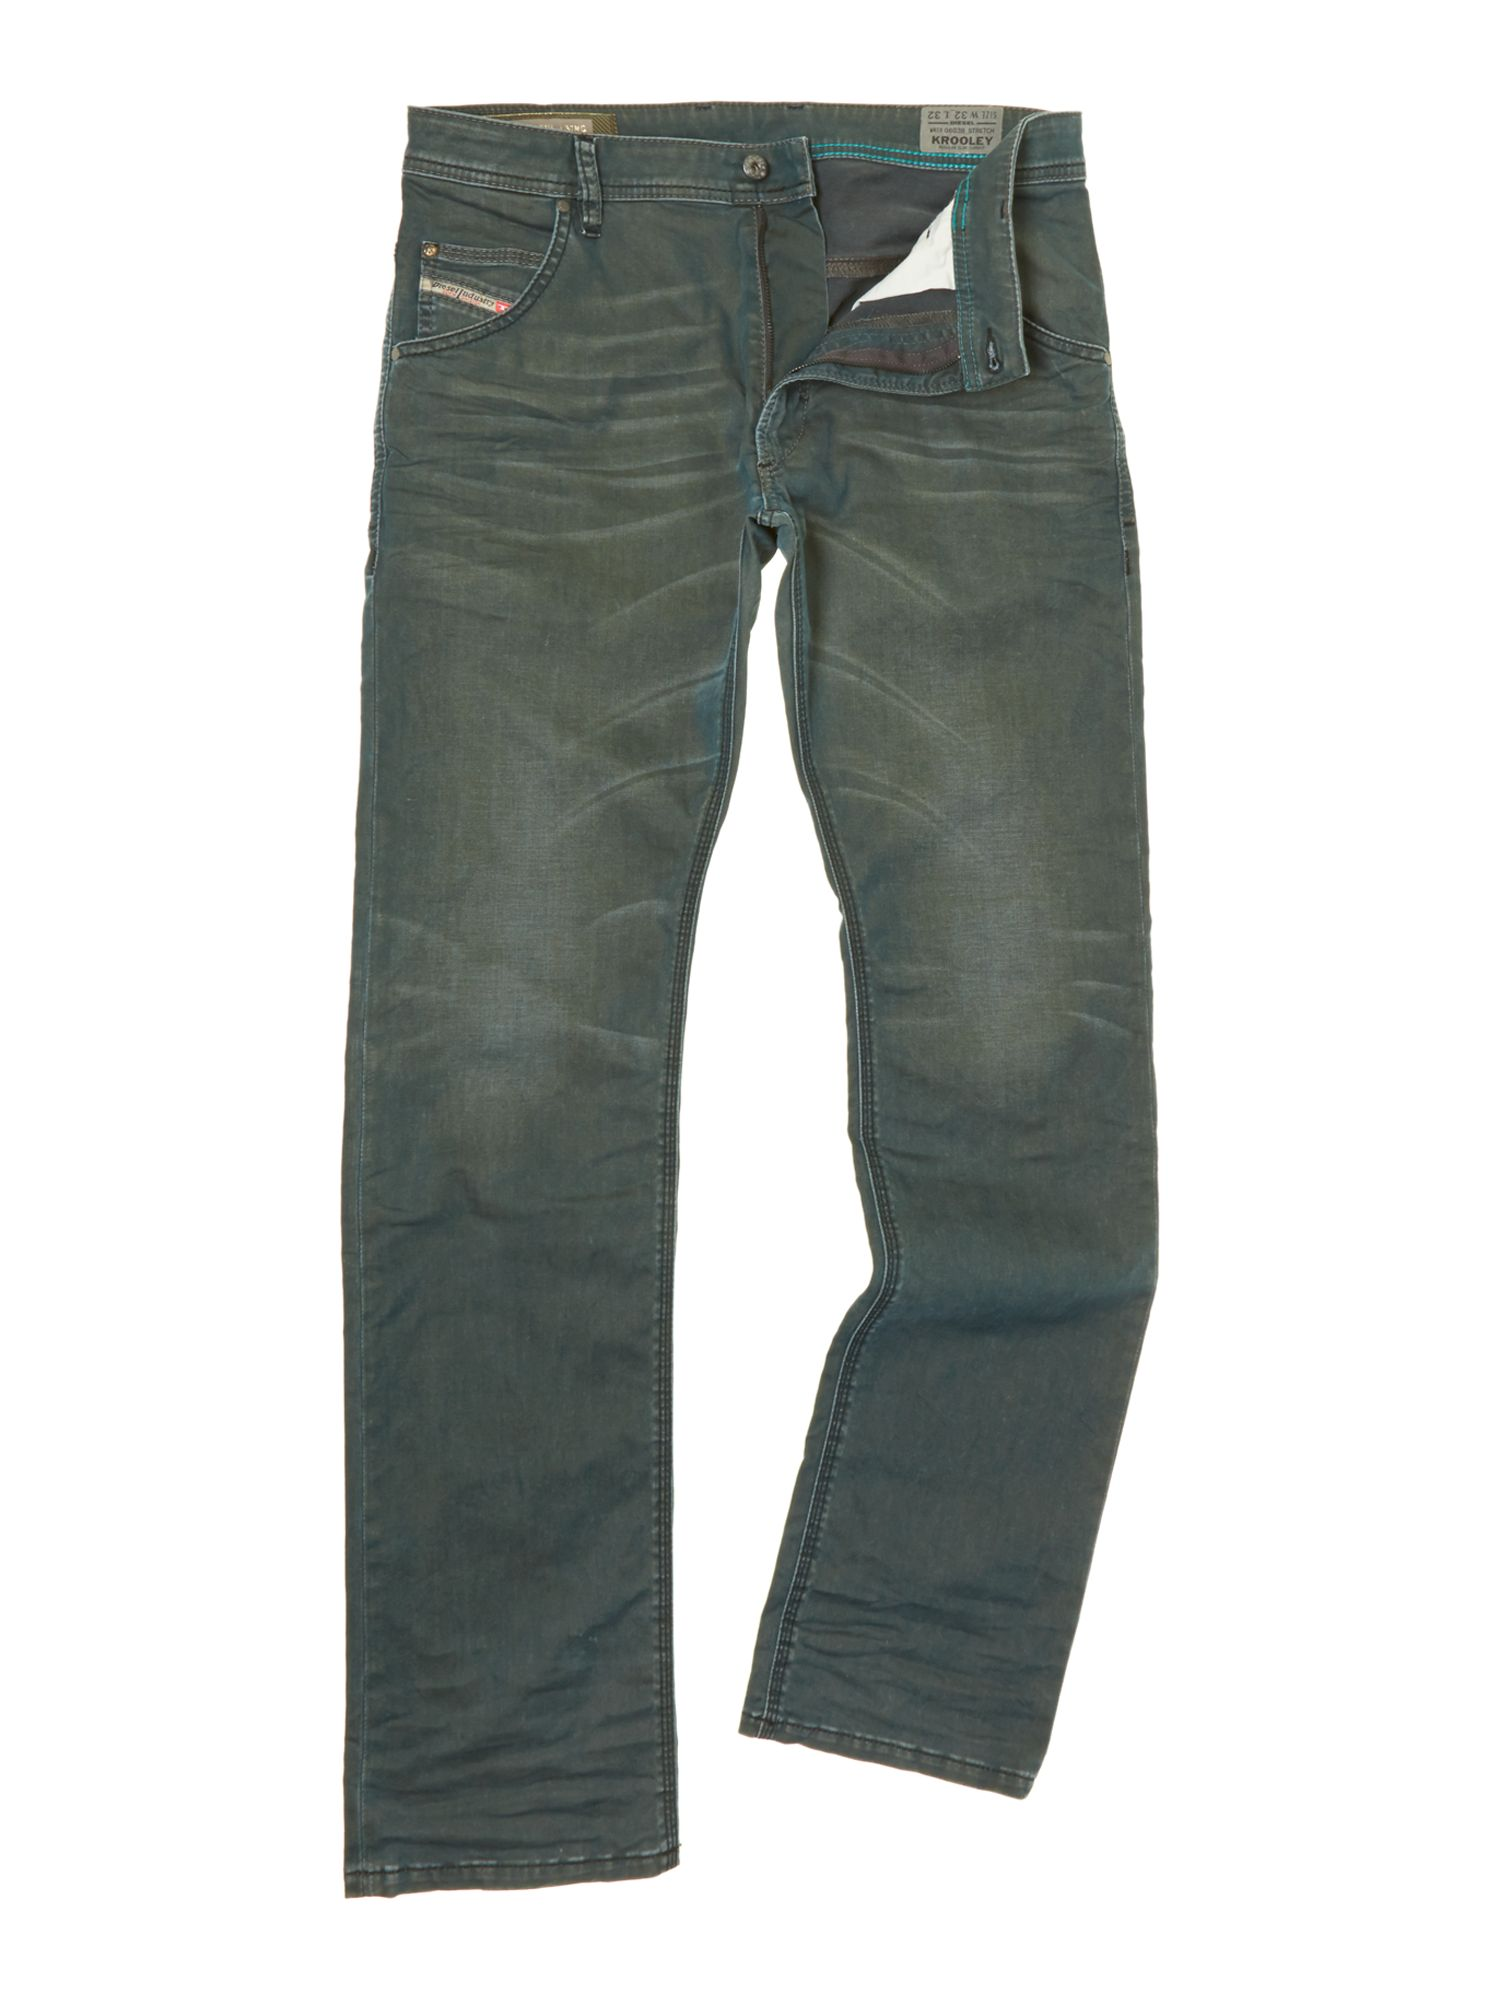 Krooley 603B carrot fit jeans